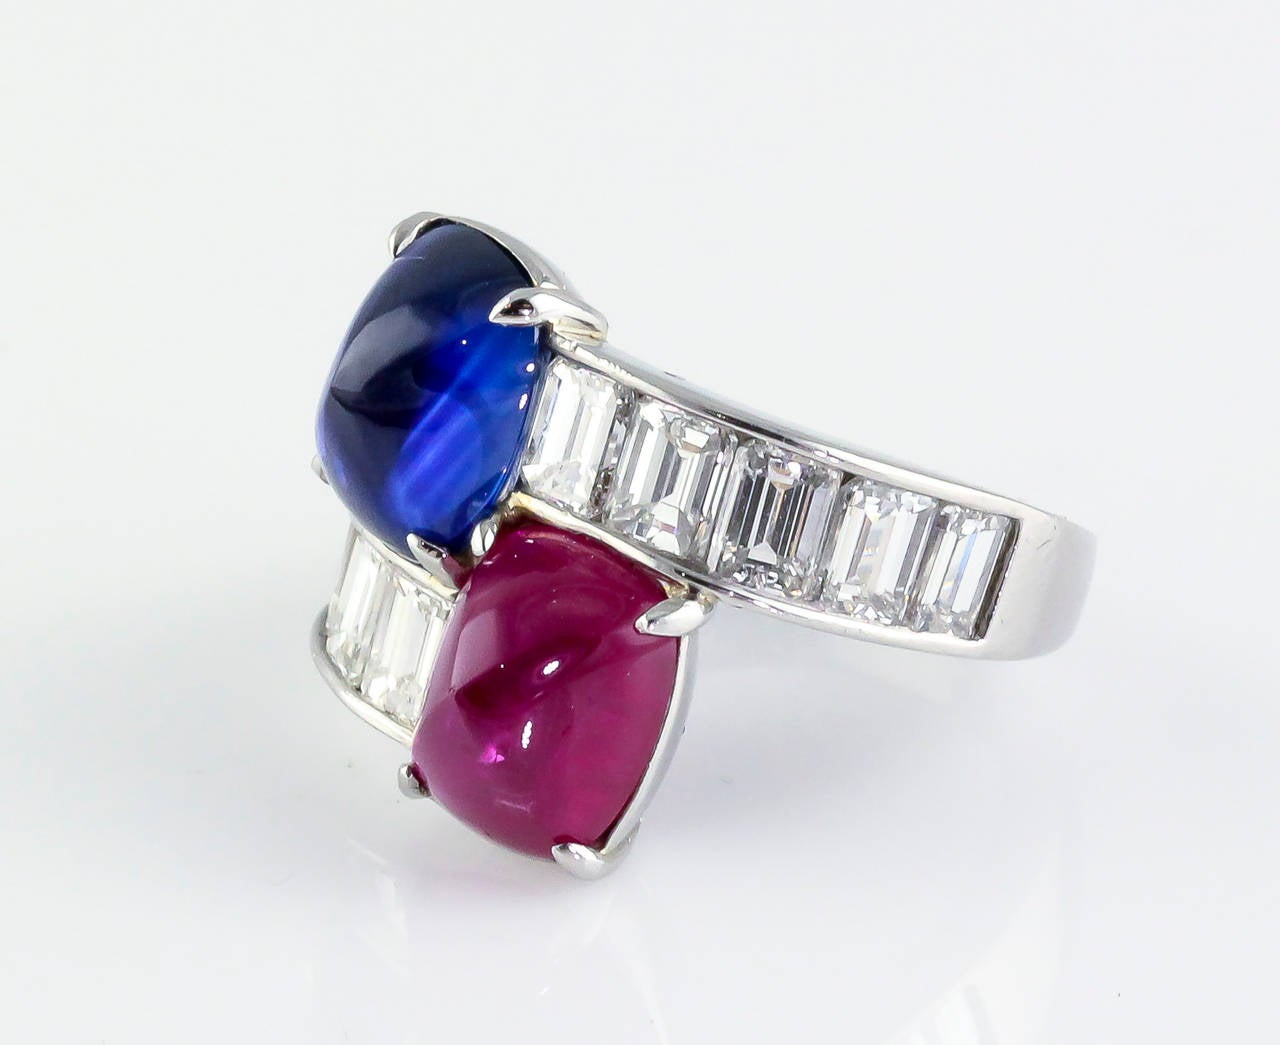 Burma Ruby Ceylon Sapphire Emerald Cut Diamond Platinum Contraire Ring at 1st